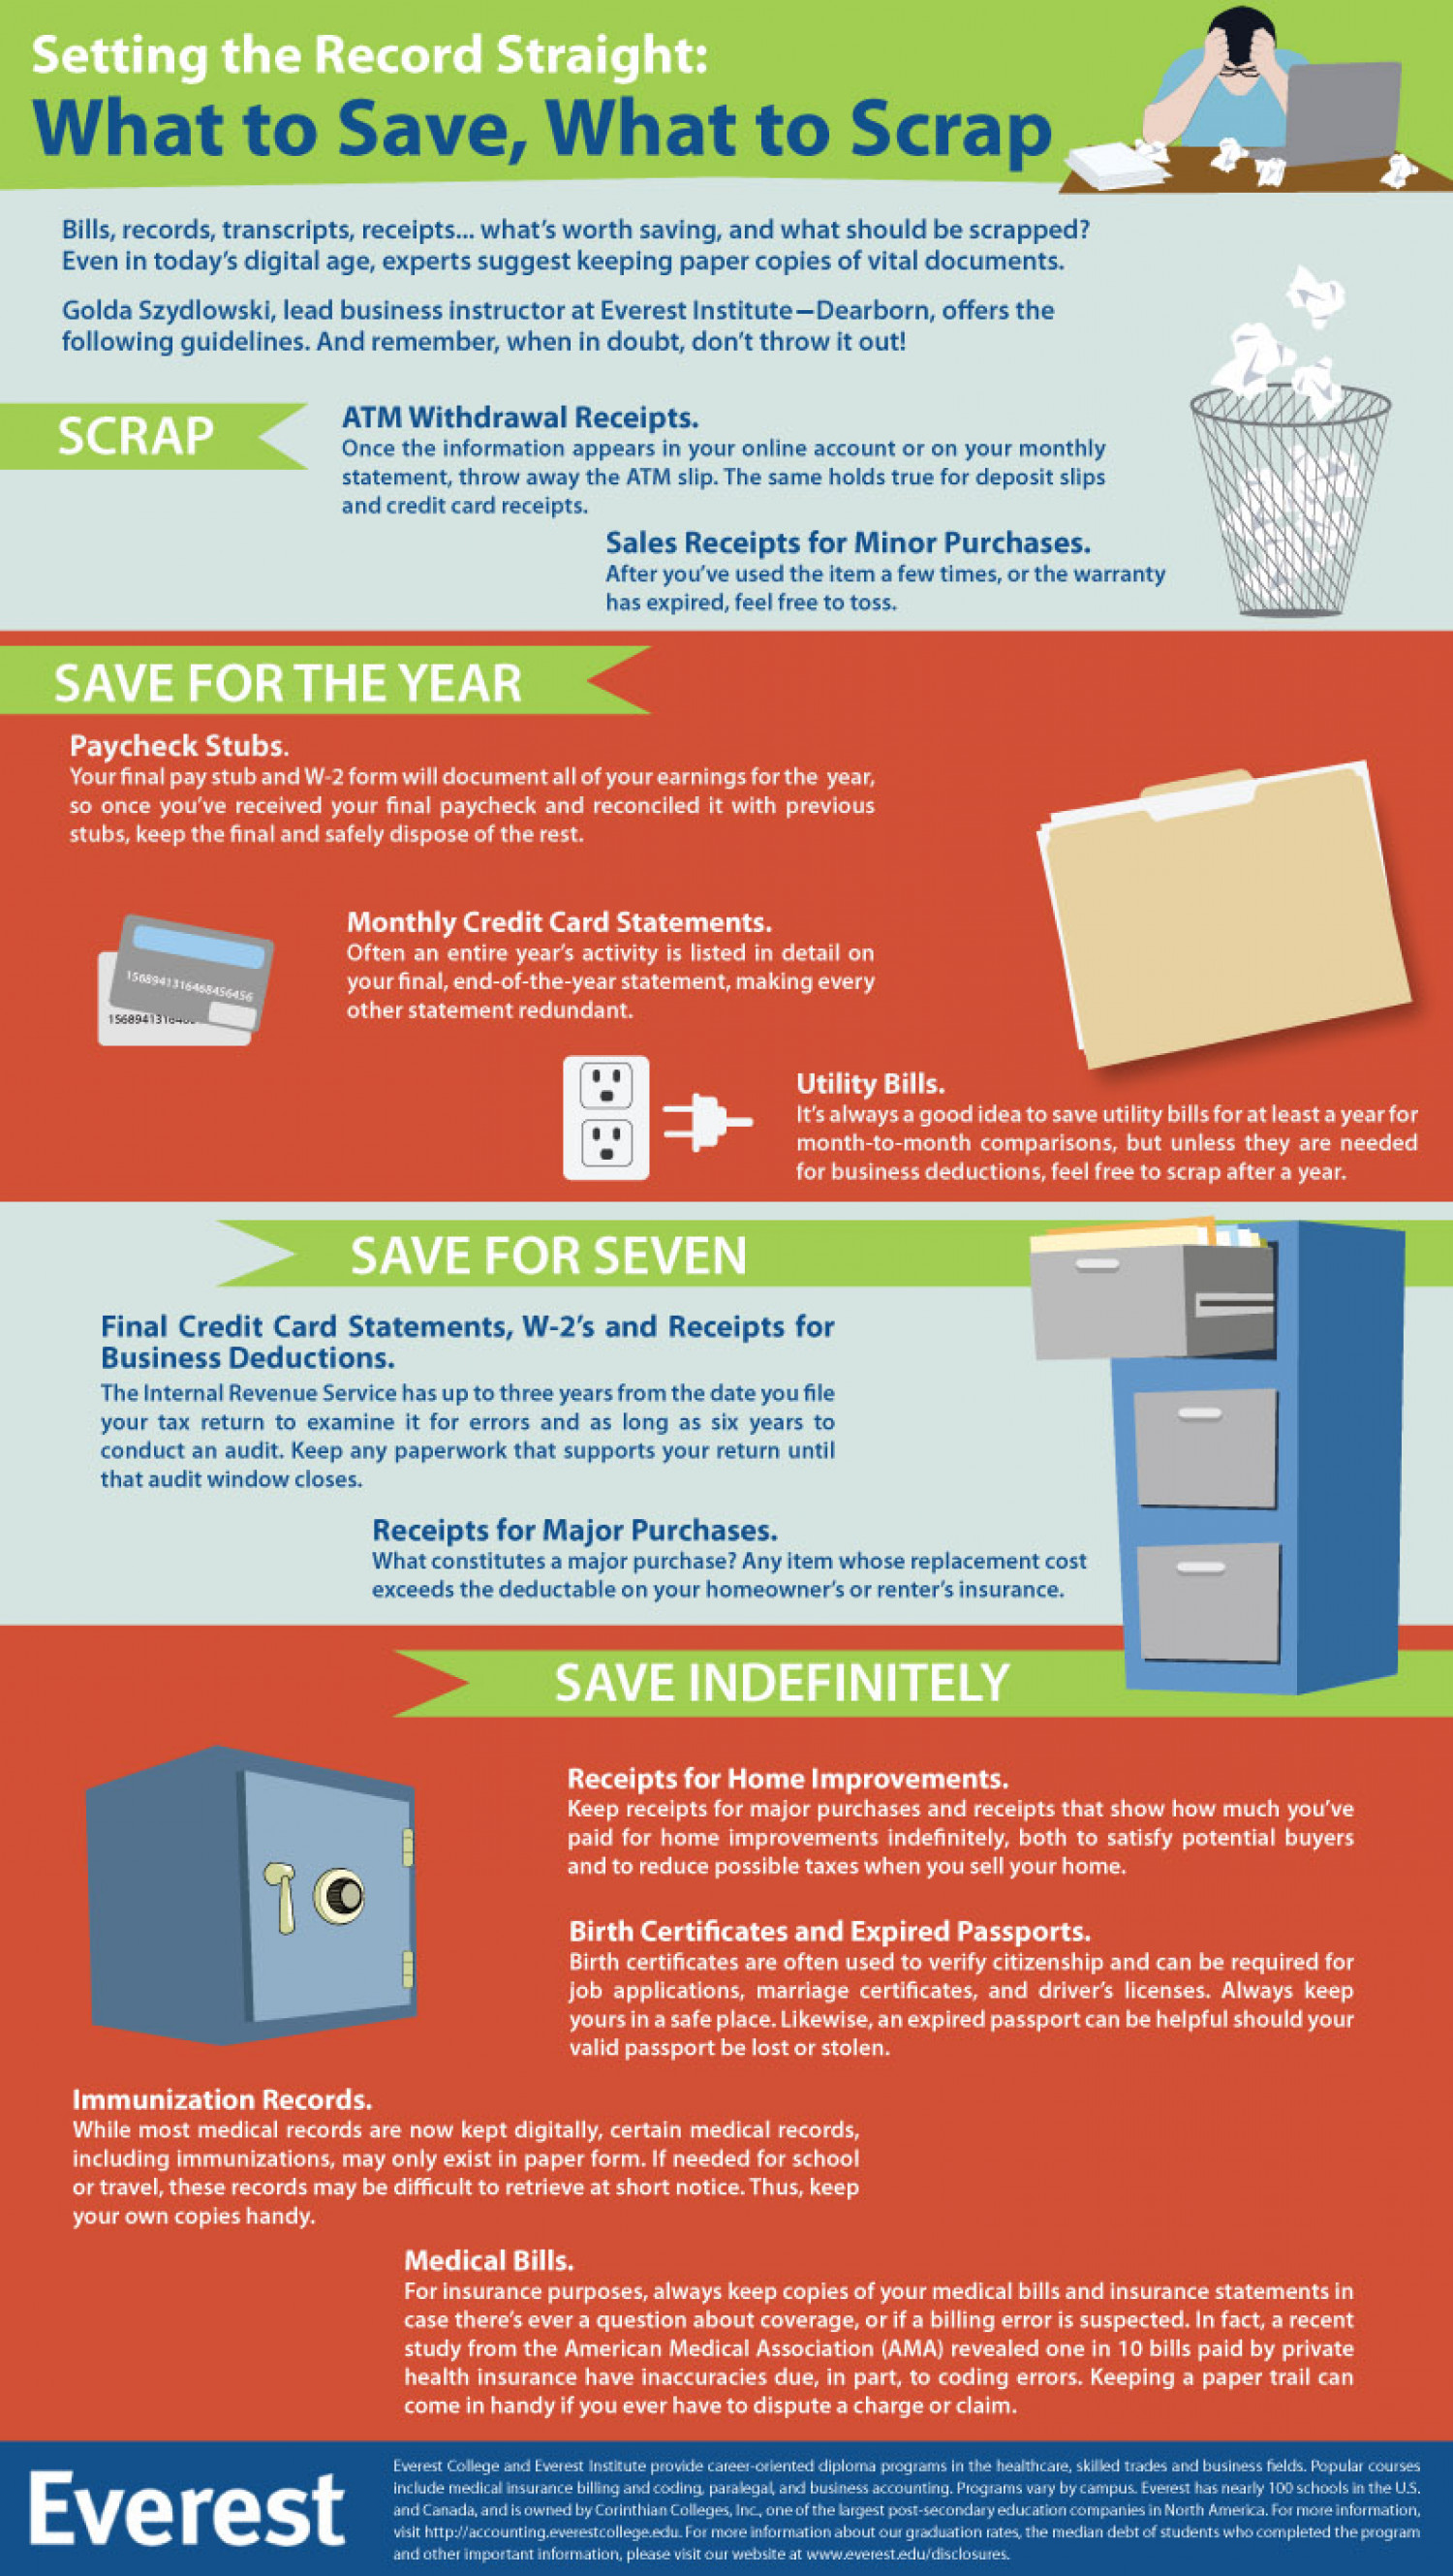 Setting the Record Straight: What to Save, What to Scrap Infographic